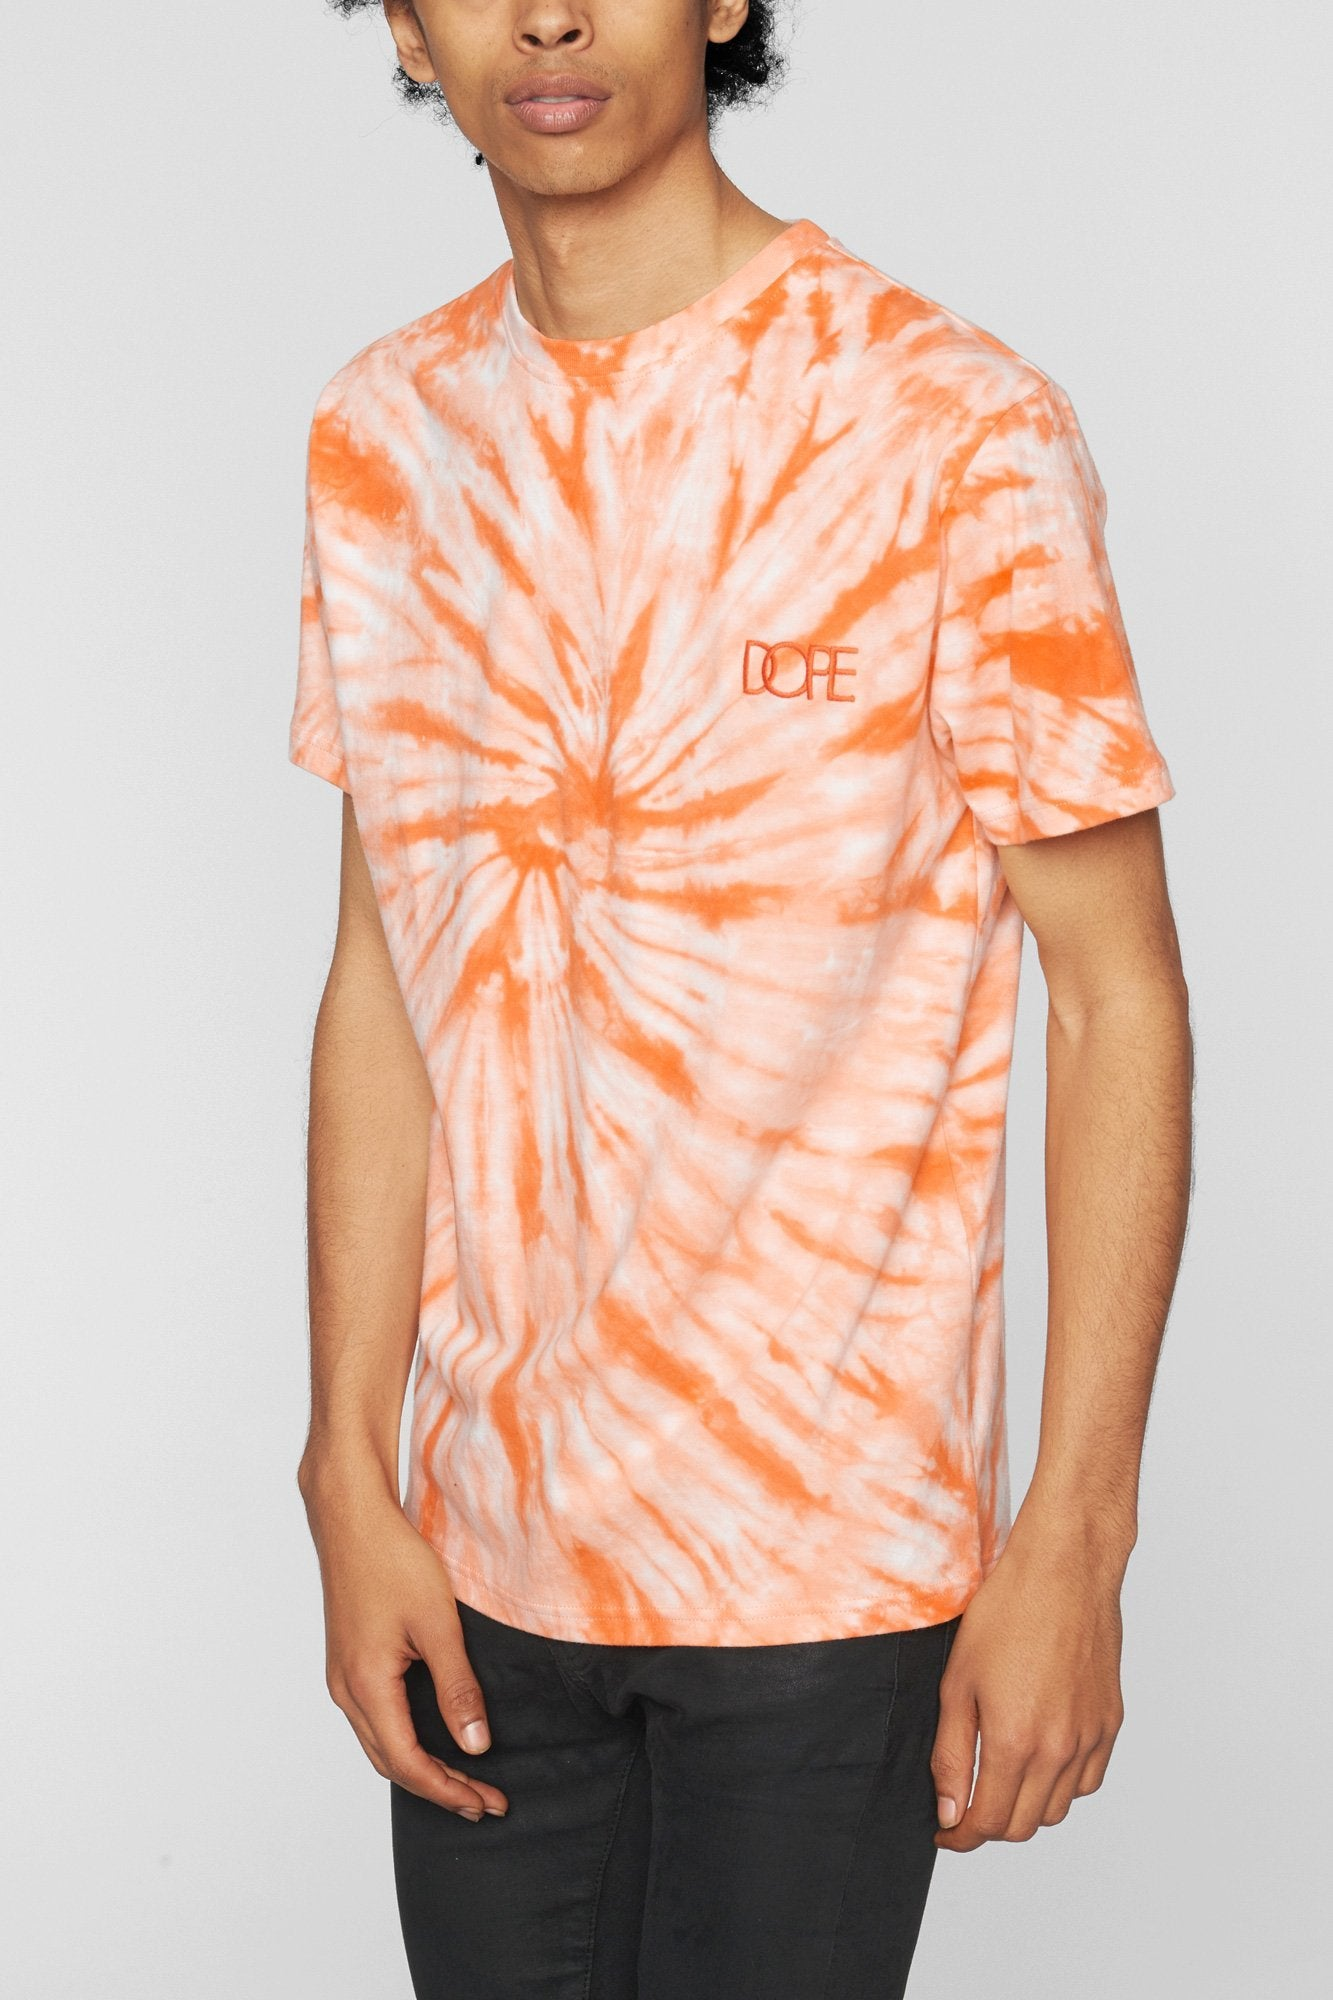 DOPE Savers Tie Dye Tee #Orange